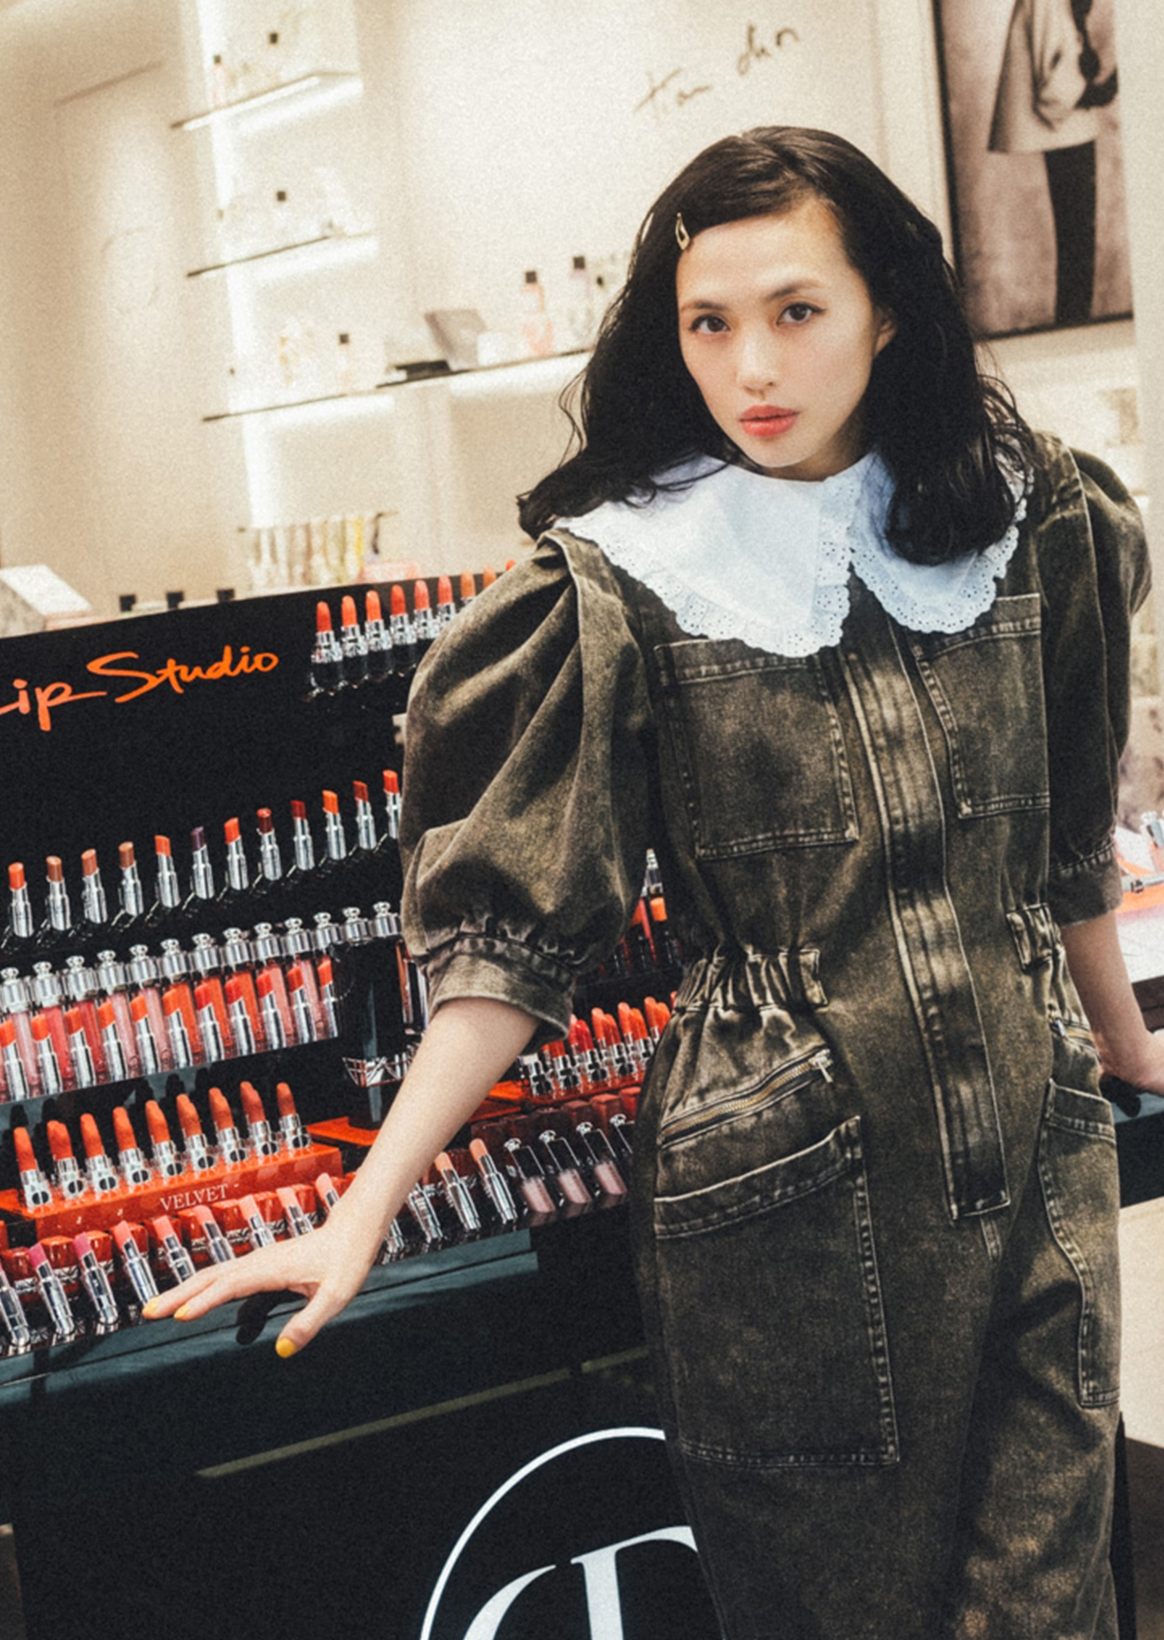 Asami Usuda X DIOR BEAUTY SHIBUYA | The new place of dispatch which stimulates aesthetic curiosity